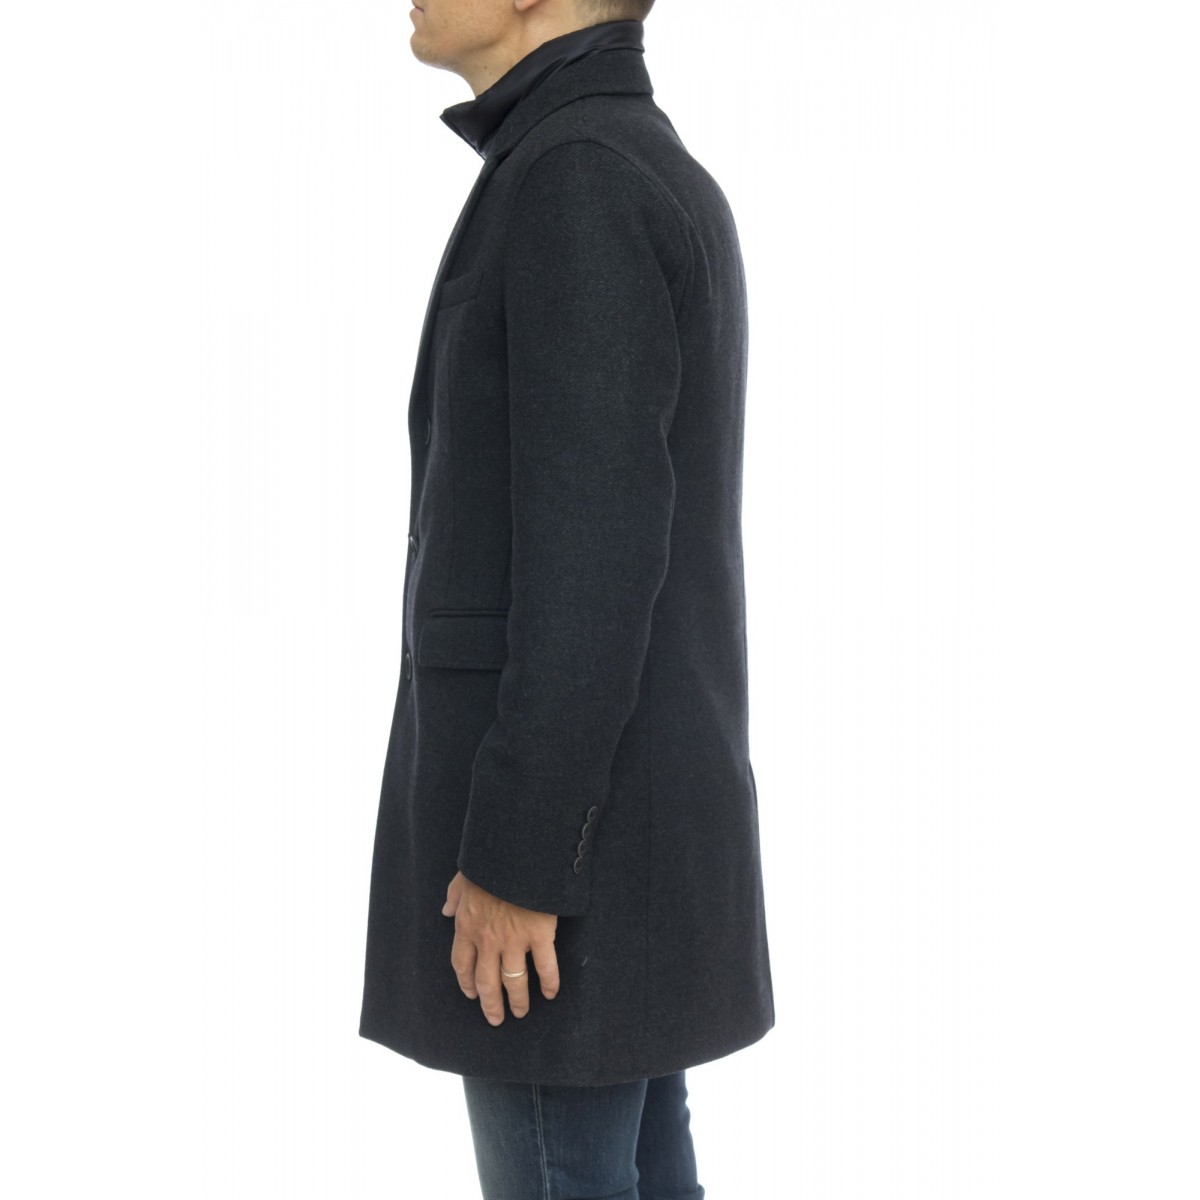 Piumino - Ca0045u 39601 cappotto lana diagonale made in italy